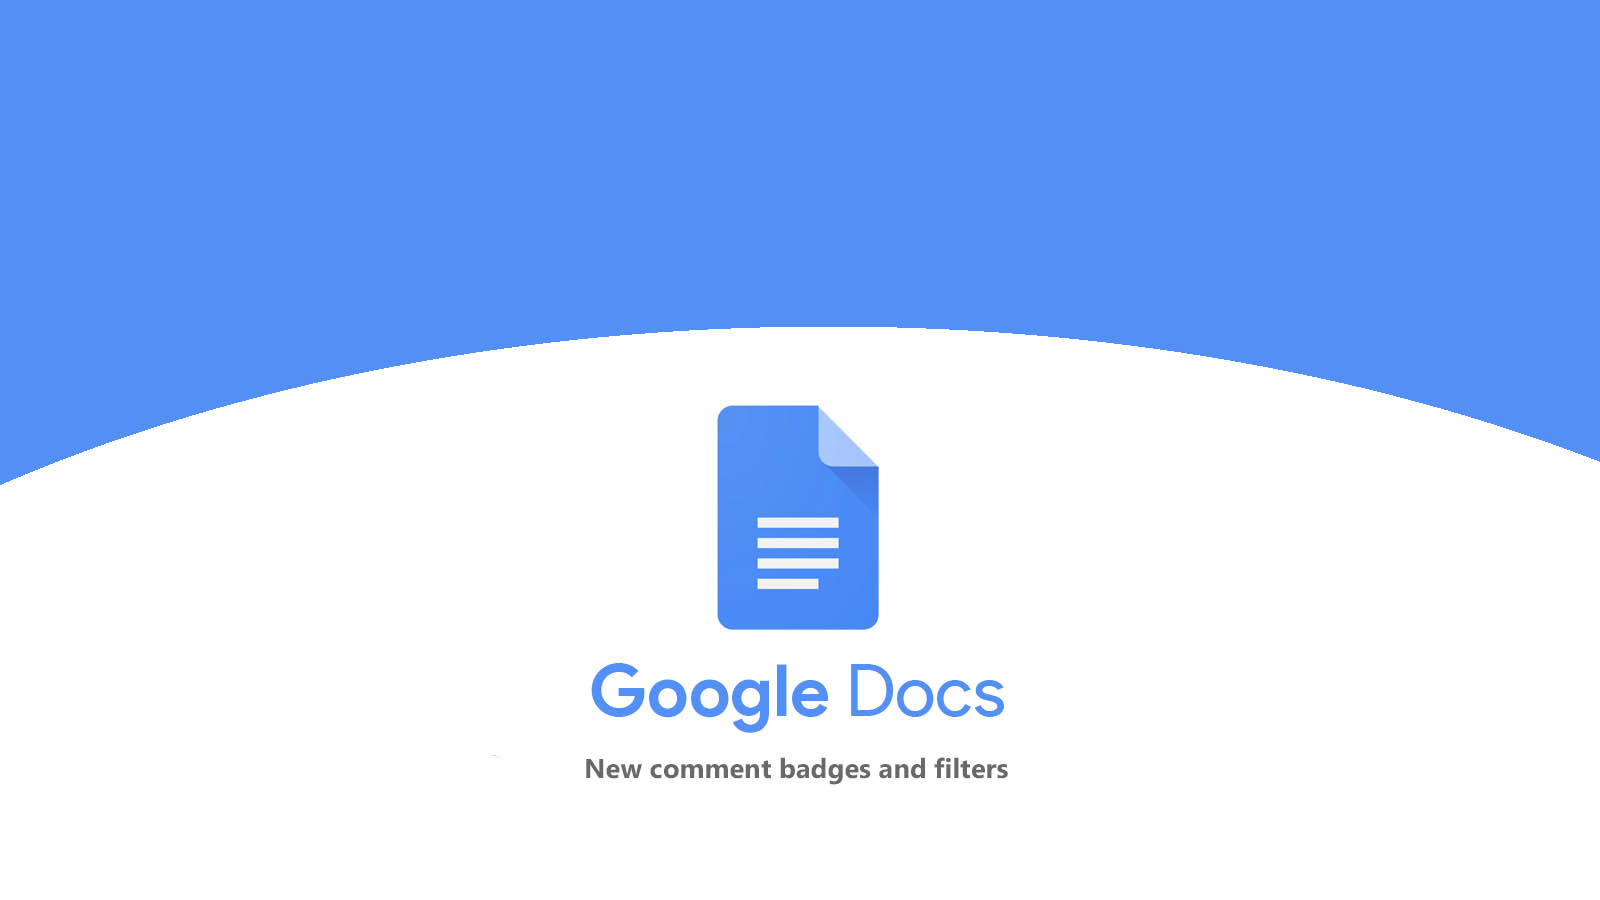 Google Docs is adding a 'new' badge for unread comments so they're easier to locate